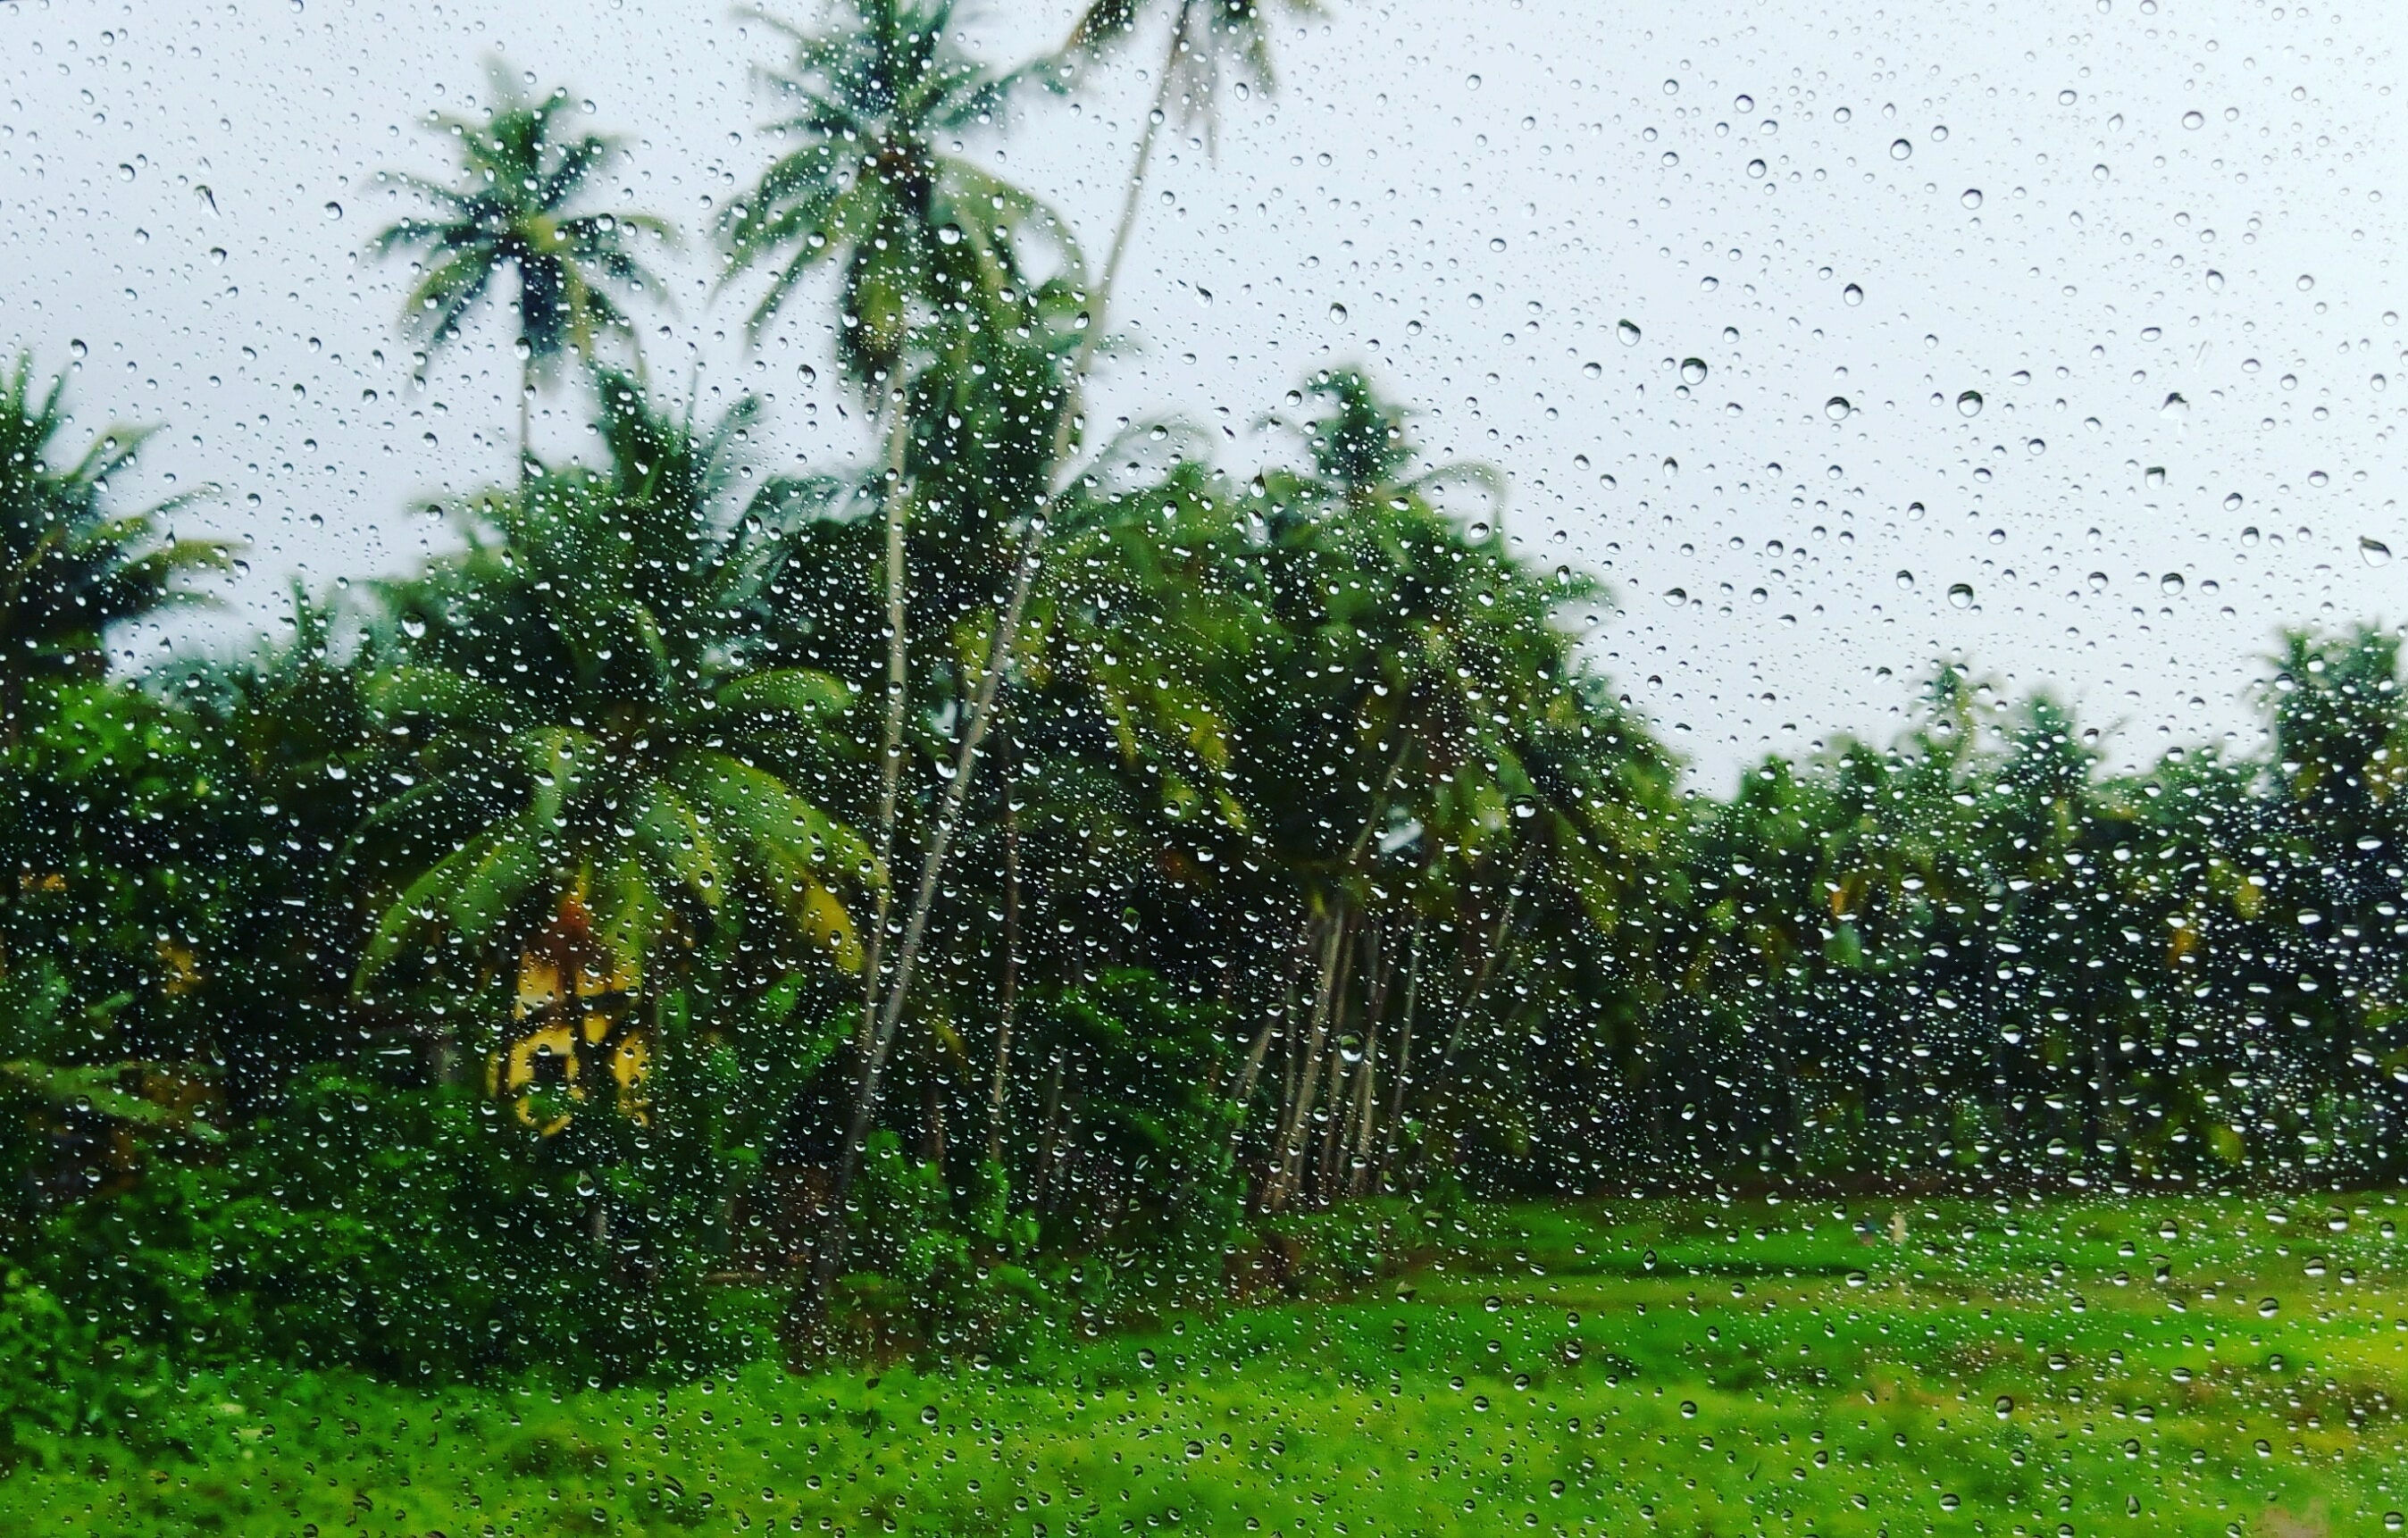 Monsoon catches up in Kerala; depression over Arabian sea likely